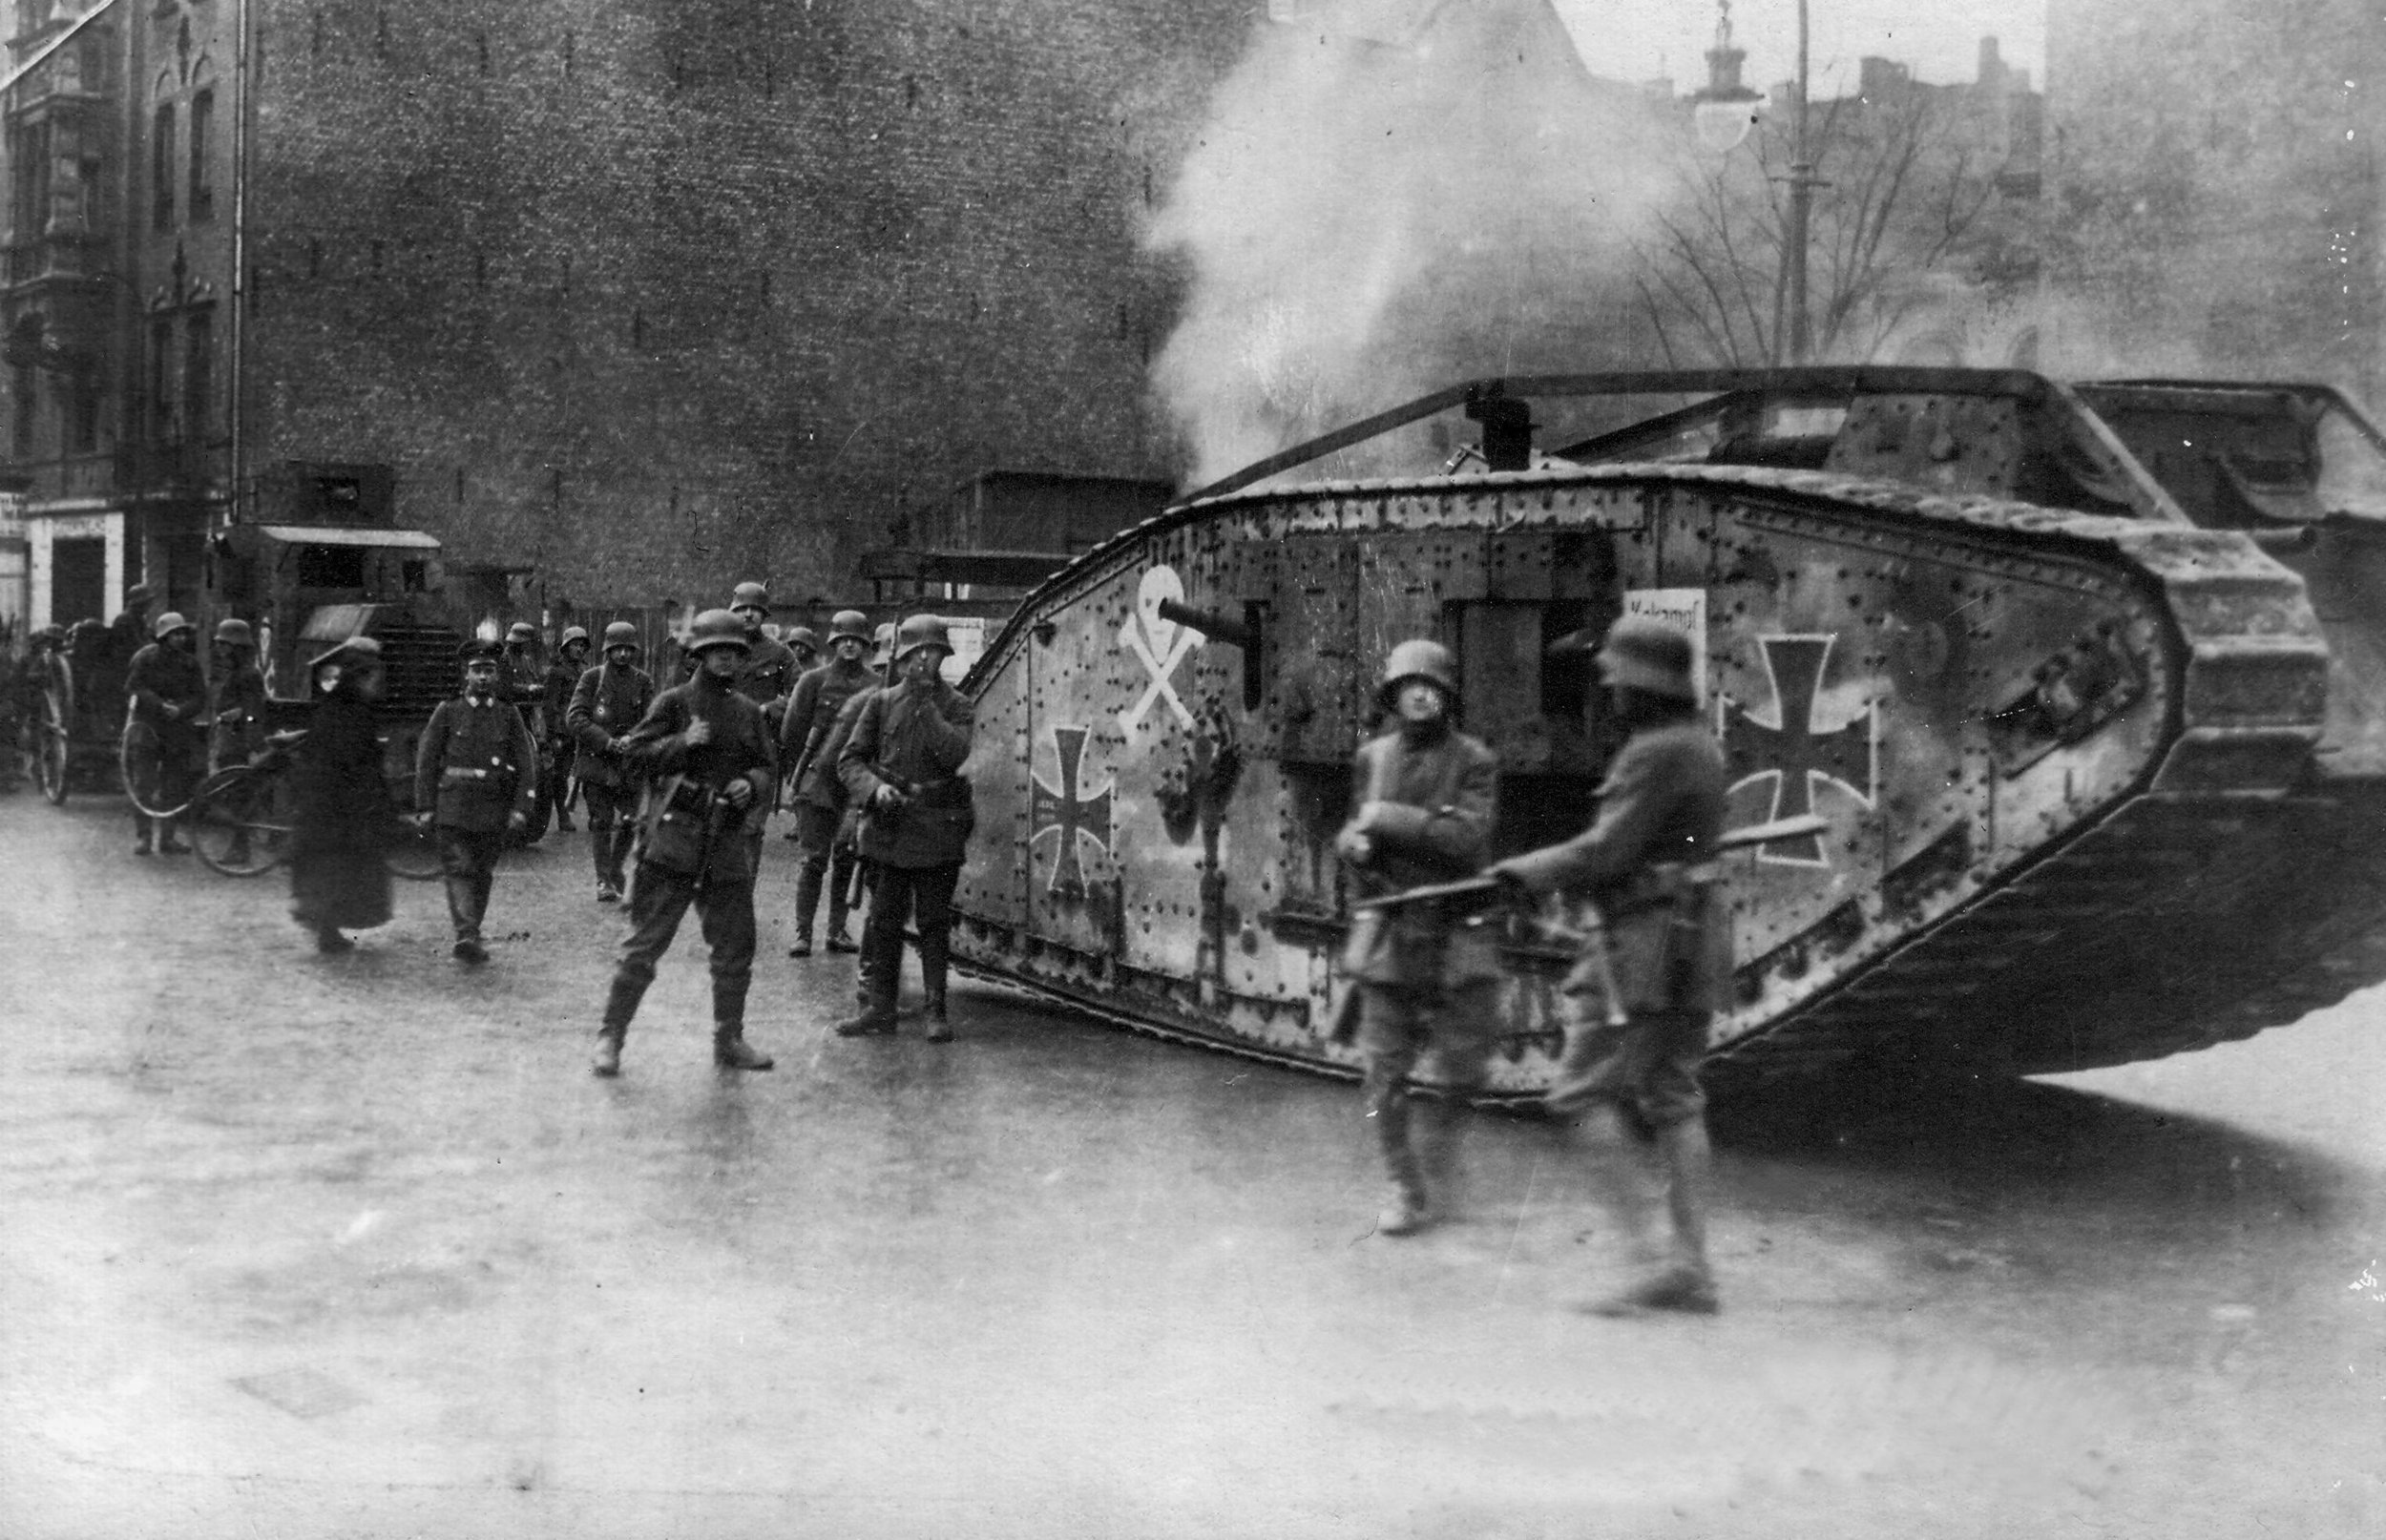 Often, the Germans would try to salvage British tanks because before 1918, they had none of their own. They would then use any captured tanks against the Allies of World War 1.